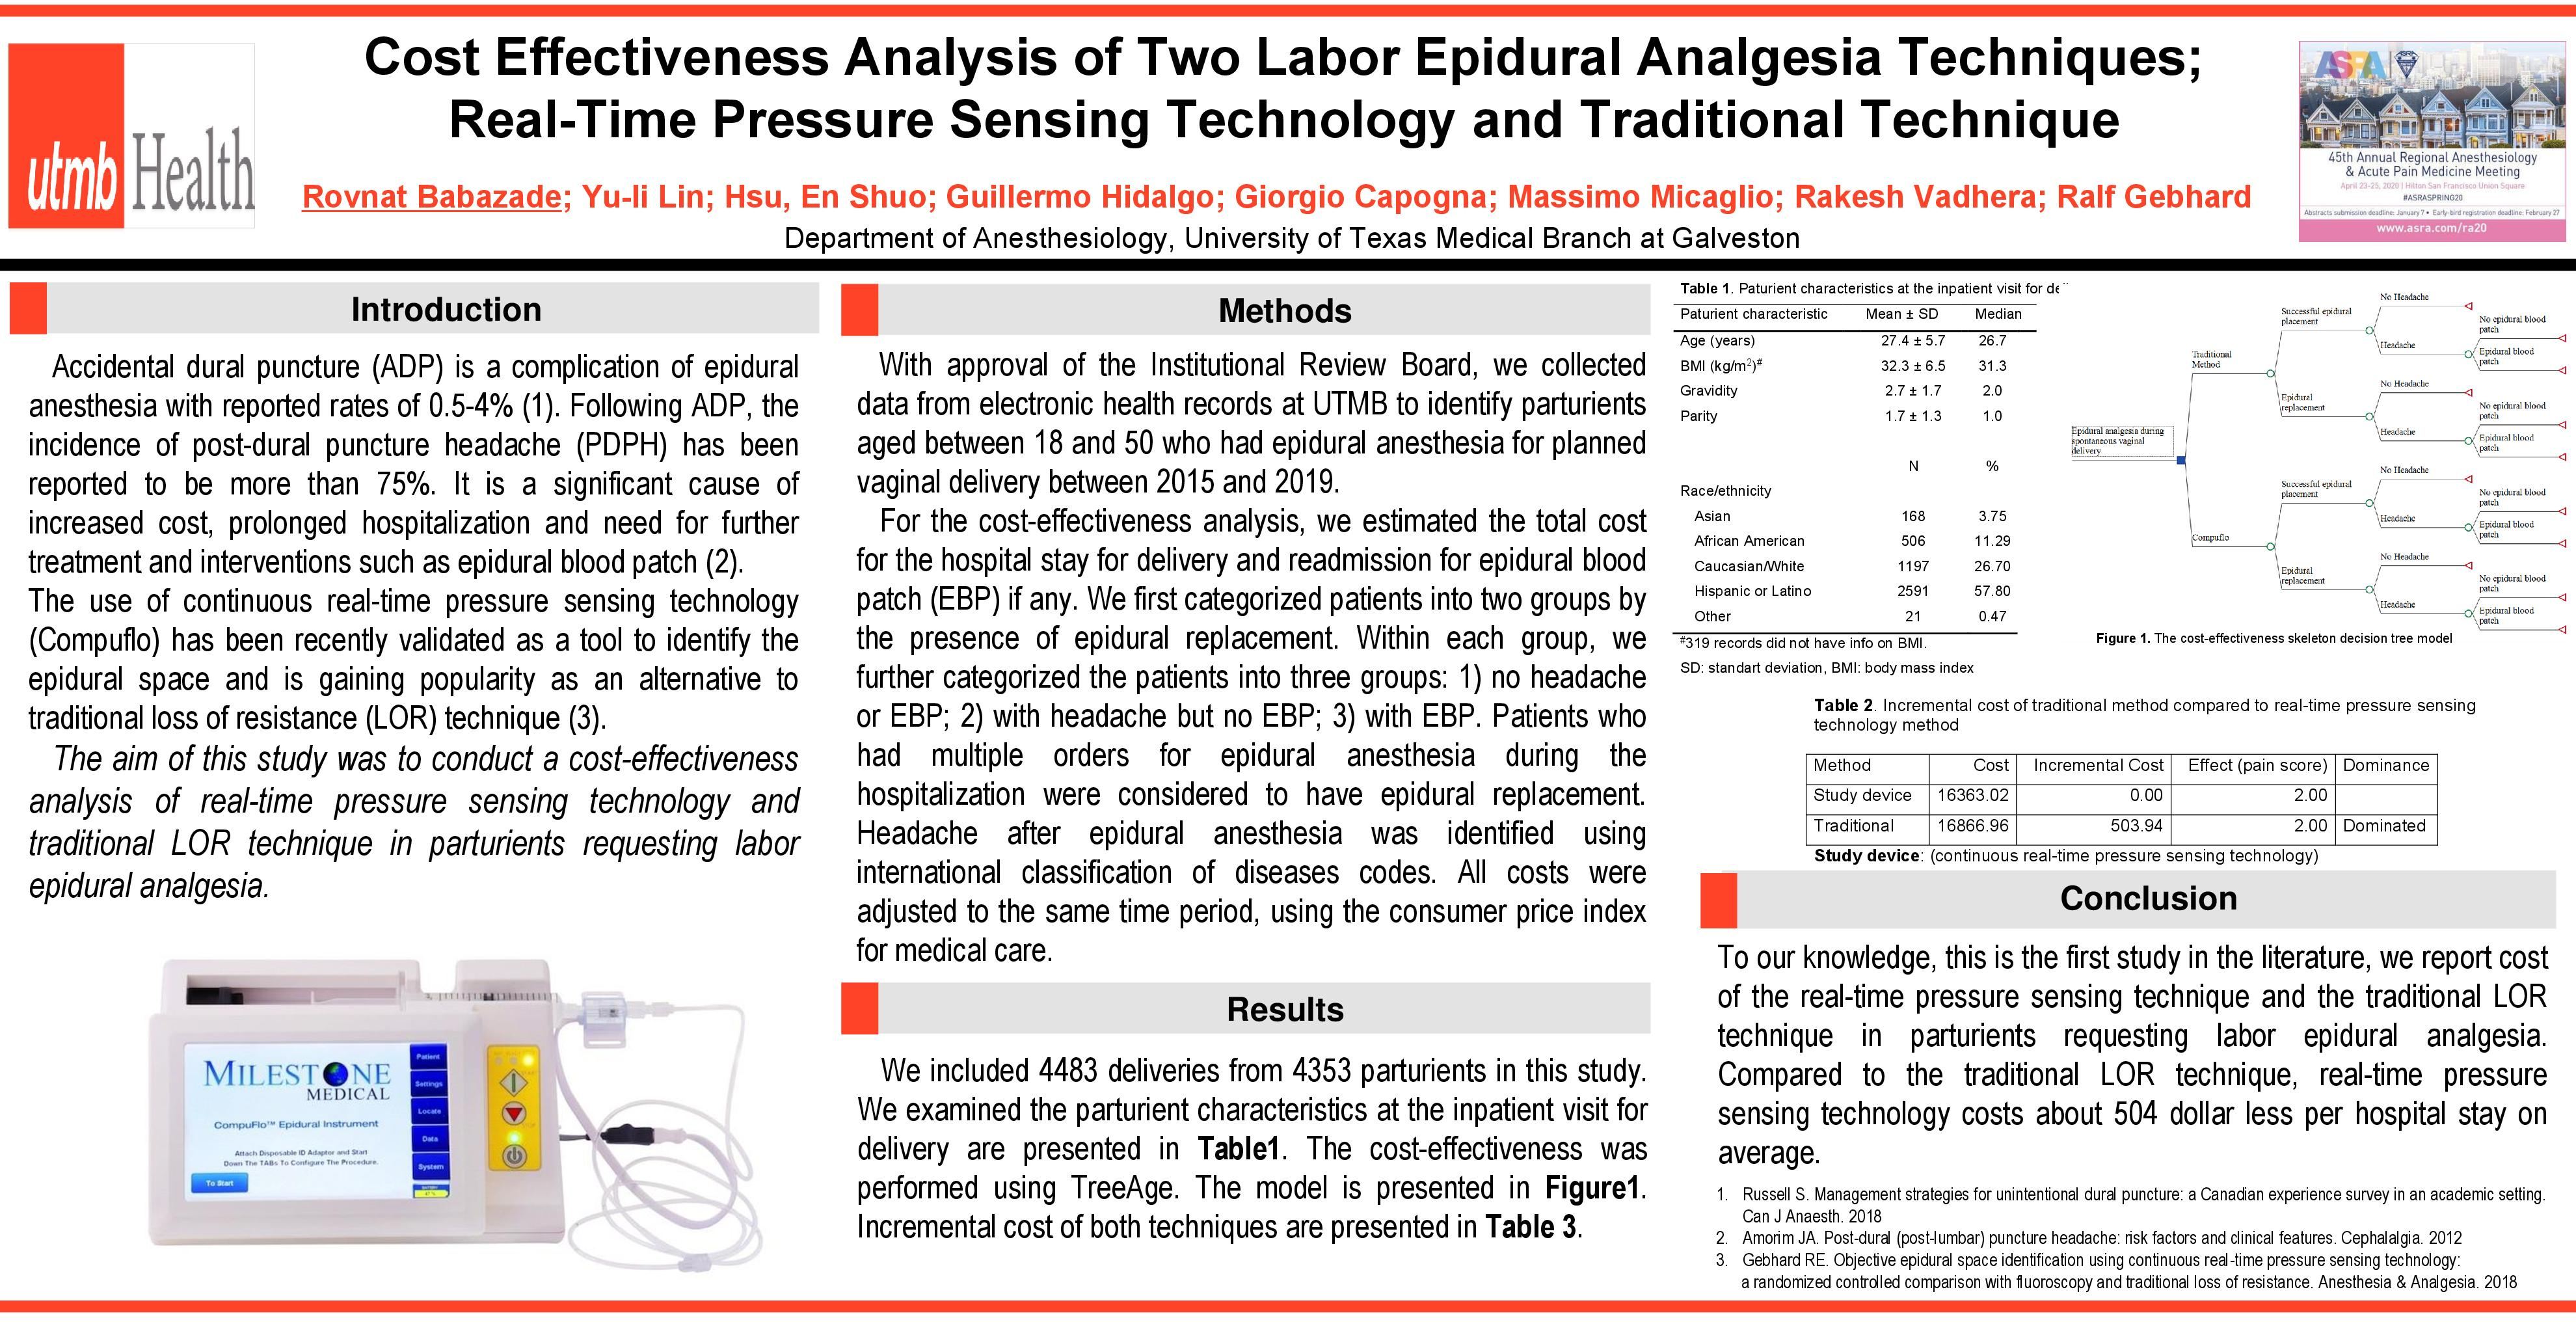 Cost Effectiveness Analysis of Two Labor Epidural Analgesia Techniques; Real-Time Pressure Sensing Technology and Traditional Technique